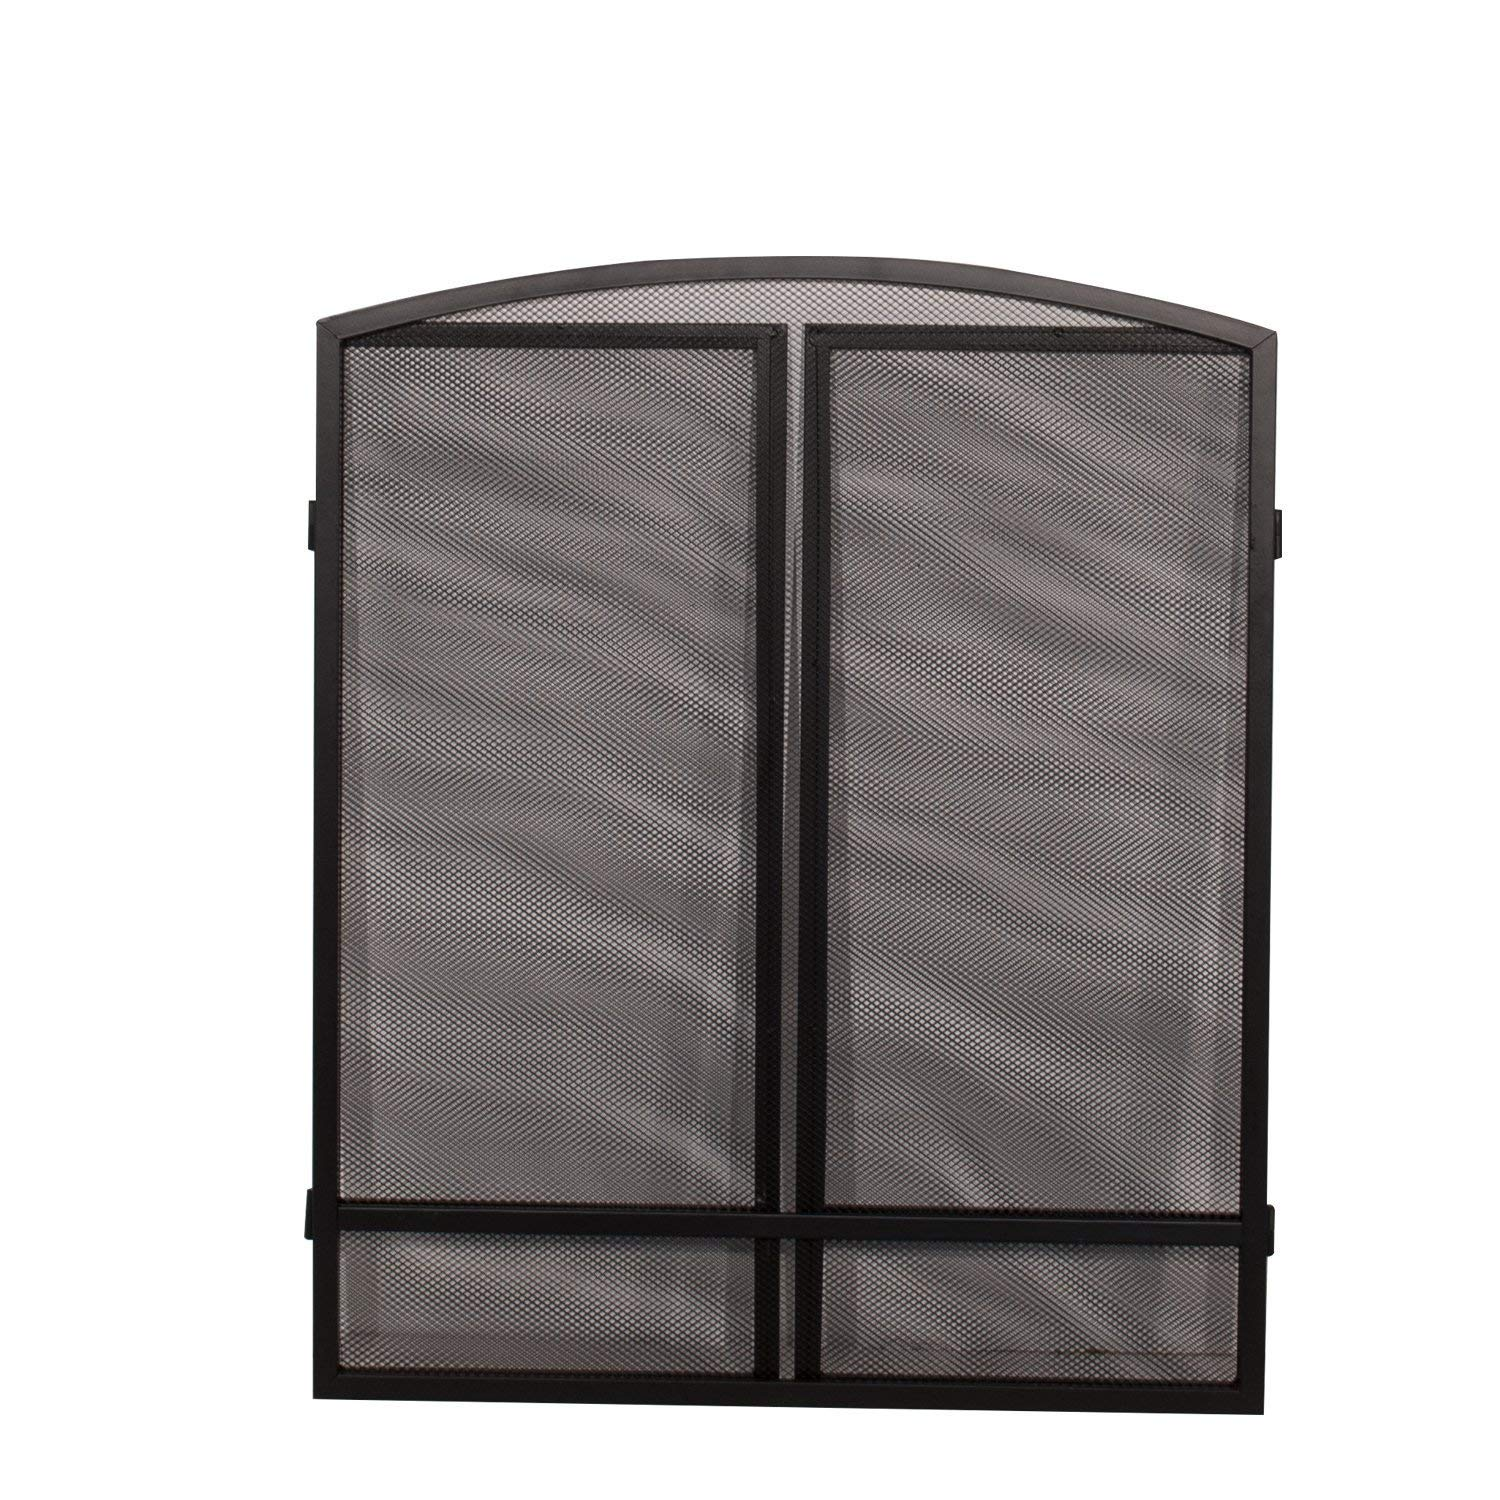 Panacea Products 15951 3-Panel Arch Screen with Double Bar for Fireplace (Limited Edition) Panacea Products.